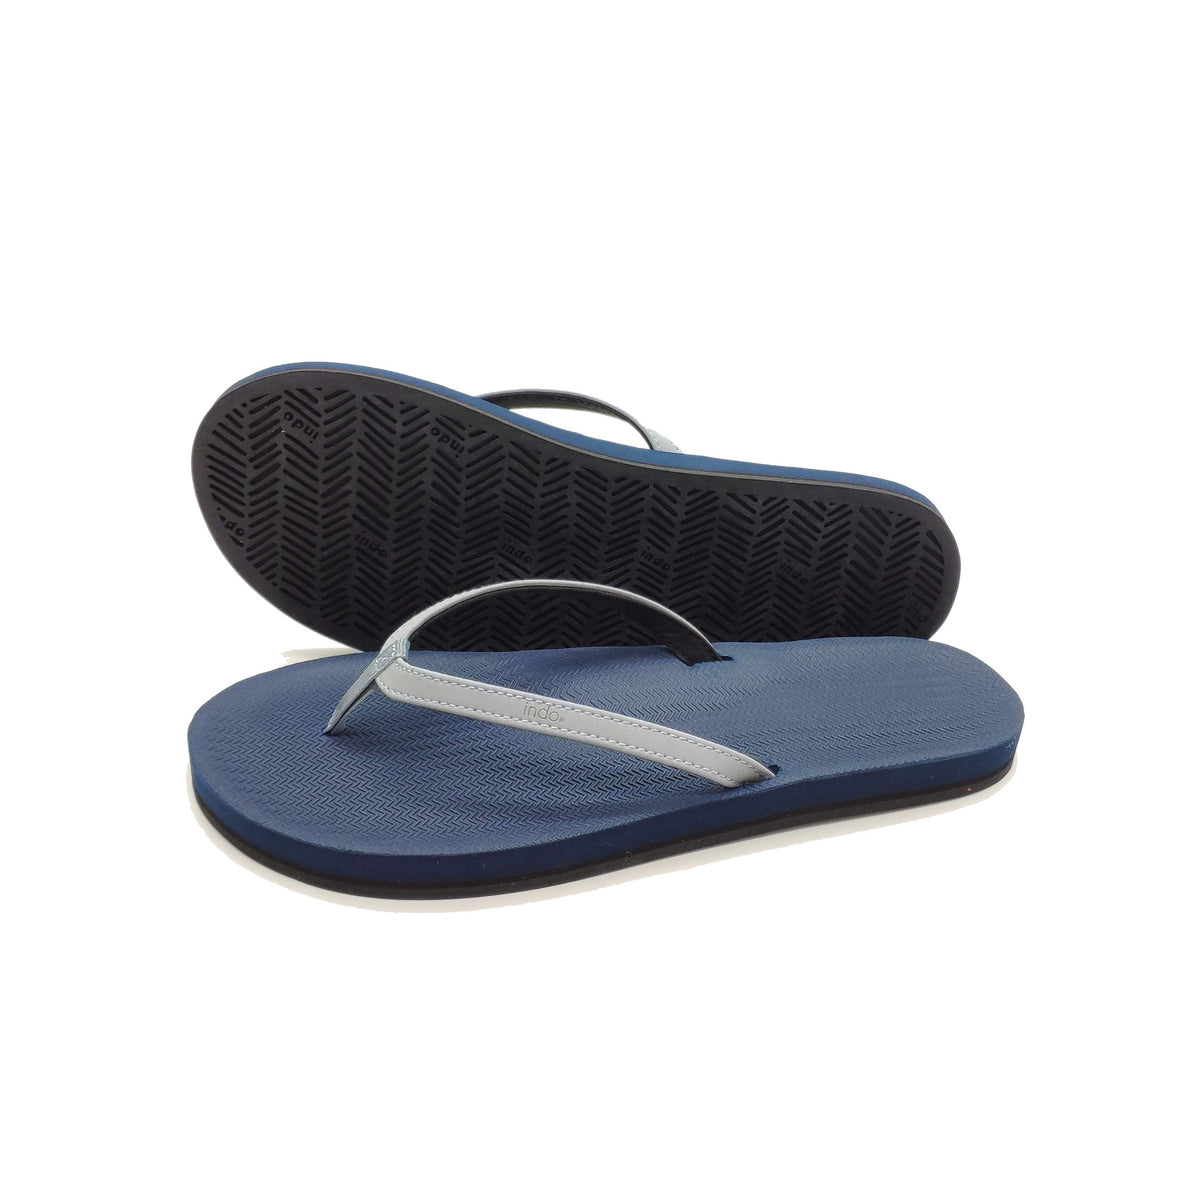 Women's Flip Flops Colour Combo Shore/Shore Light - Lightweight, durable, waterproof, comfortable. Sustainably made vegan shoes using natural rubber and recycled tires